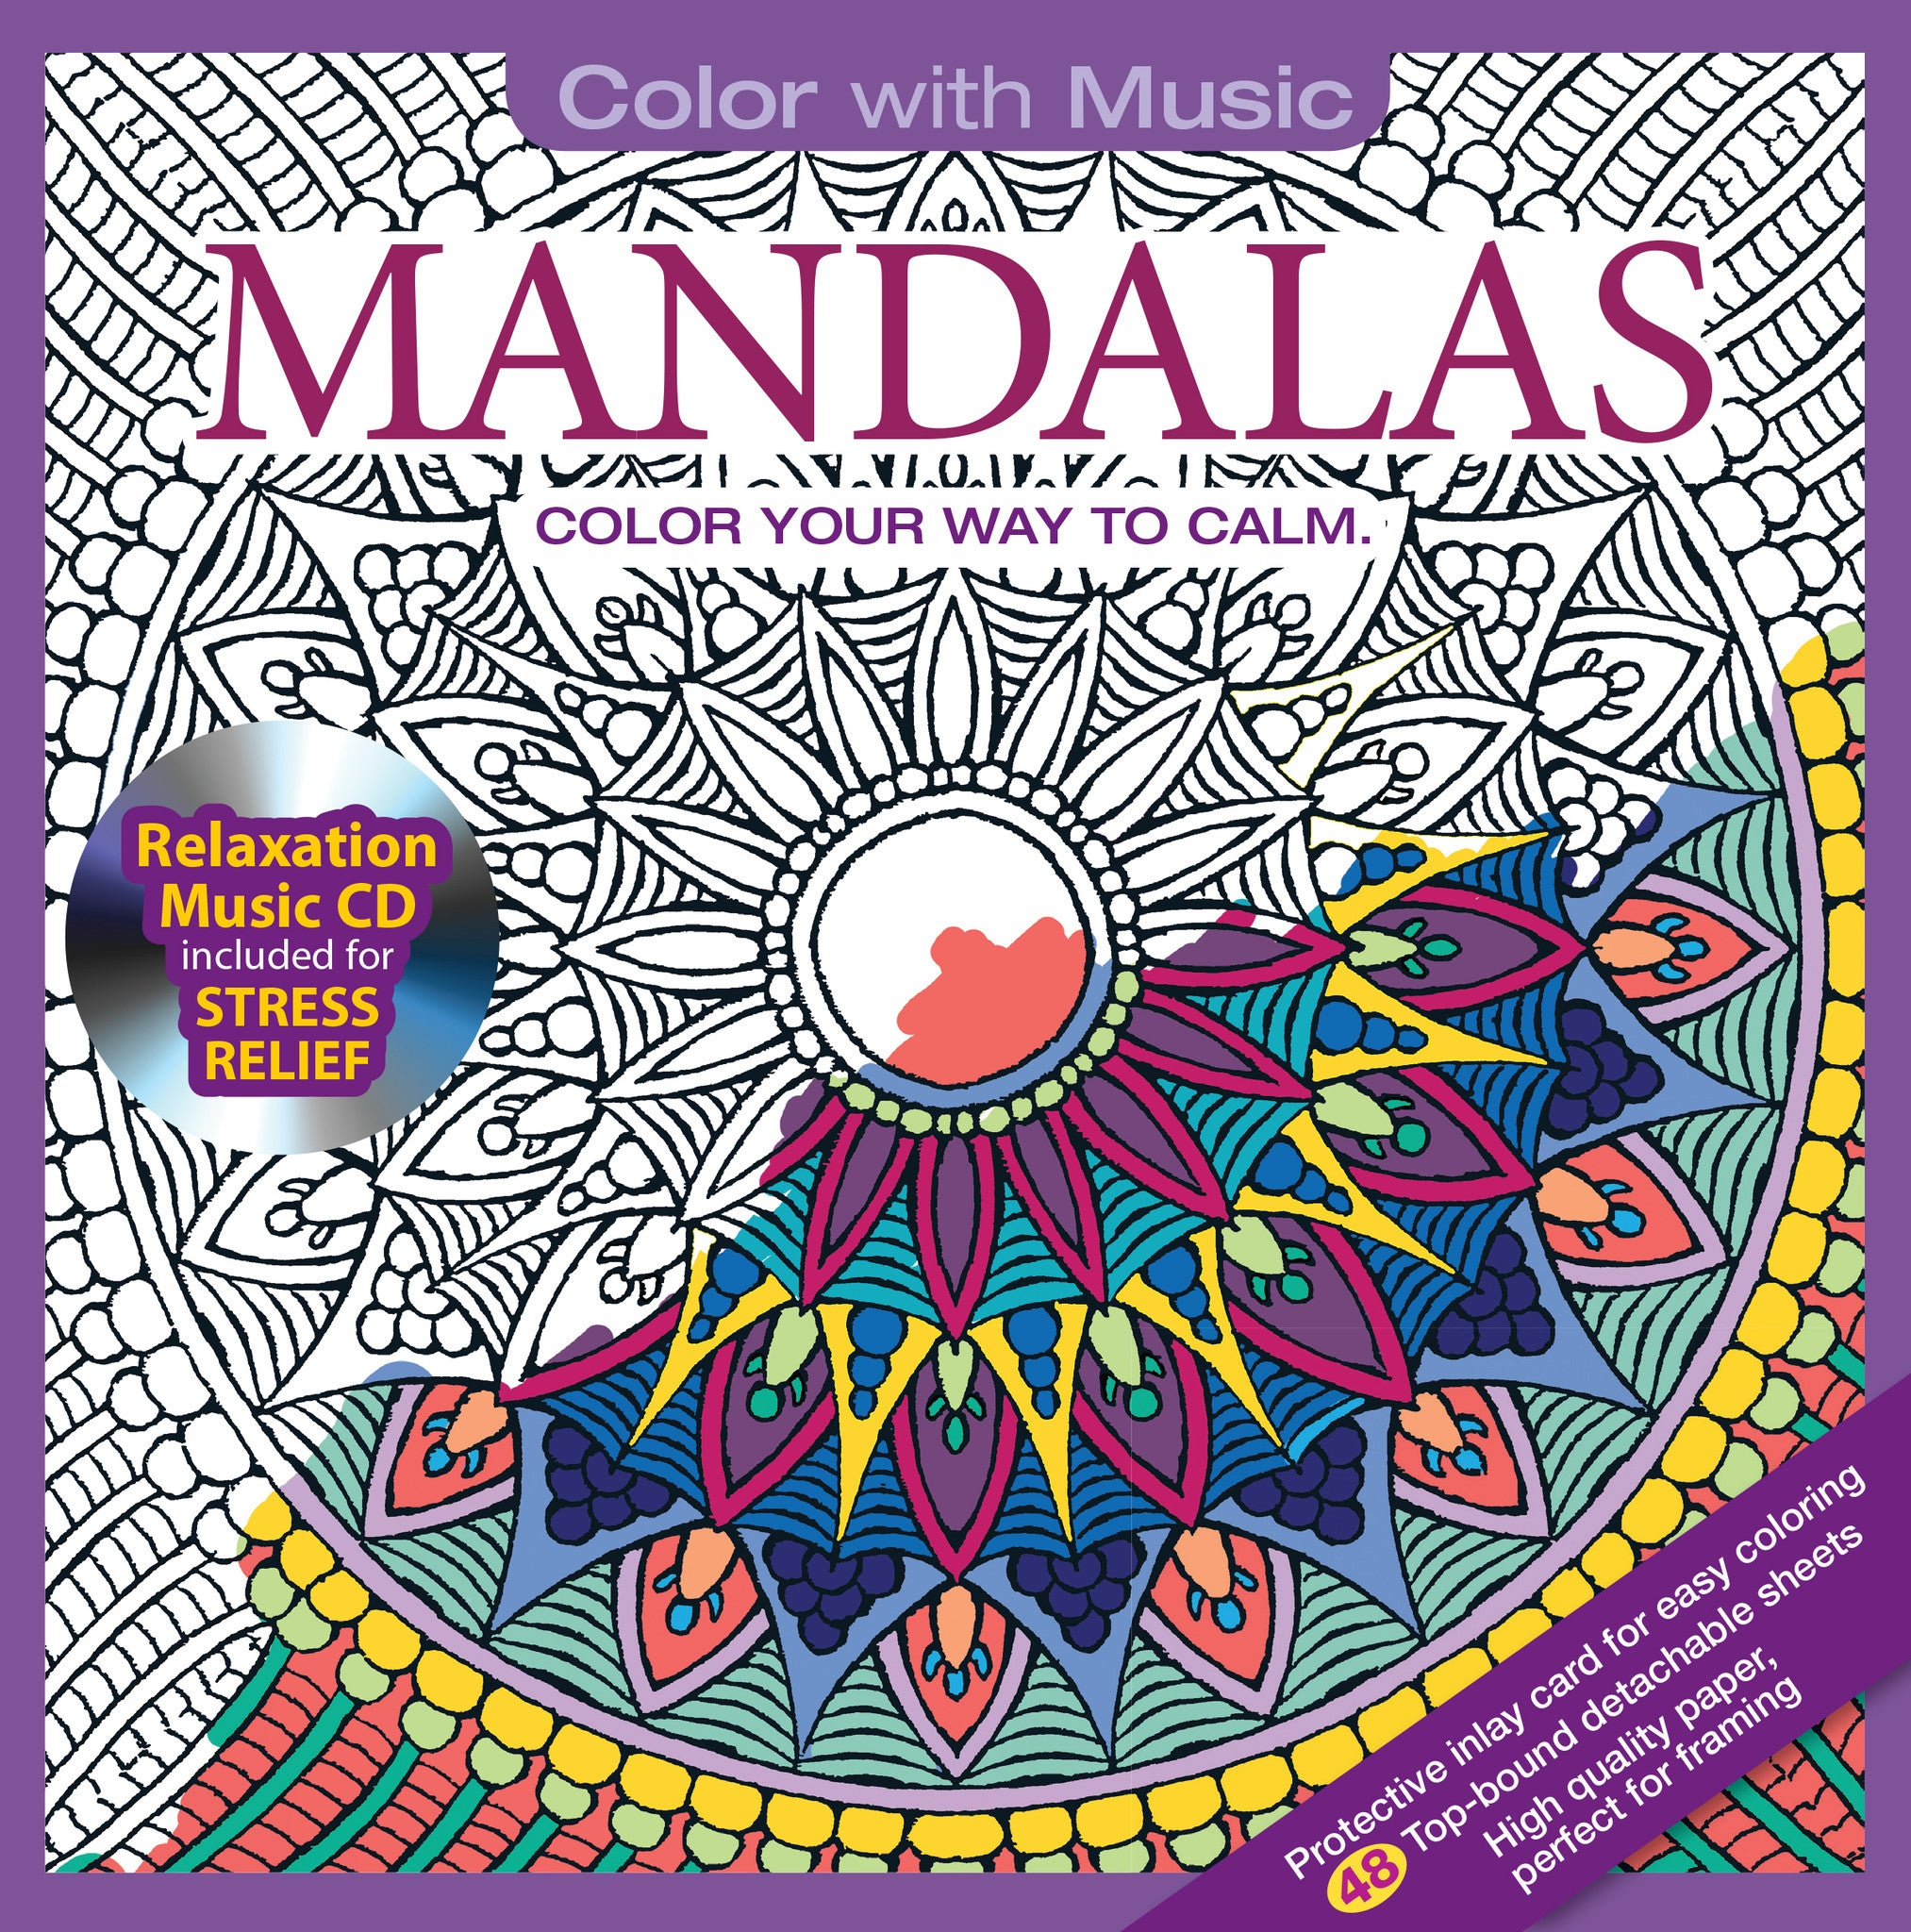 Color With Music Mandalas Adult Coloring Book Cover